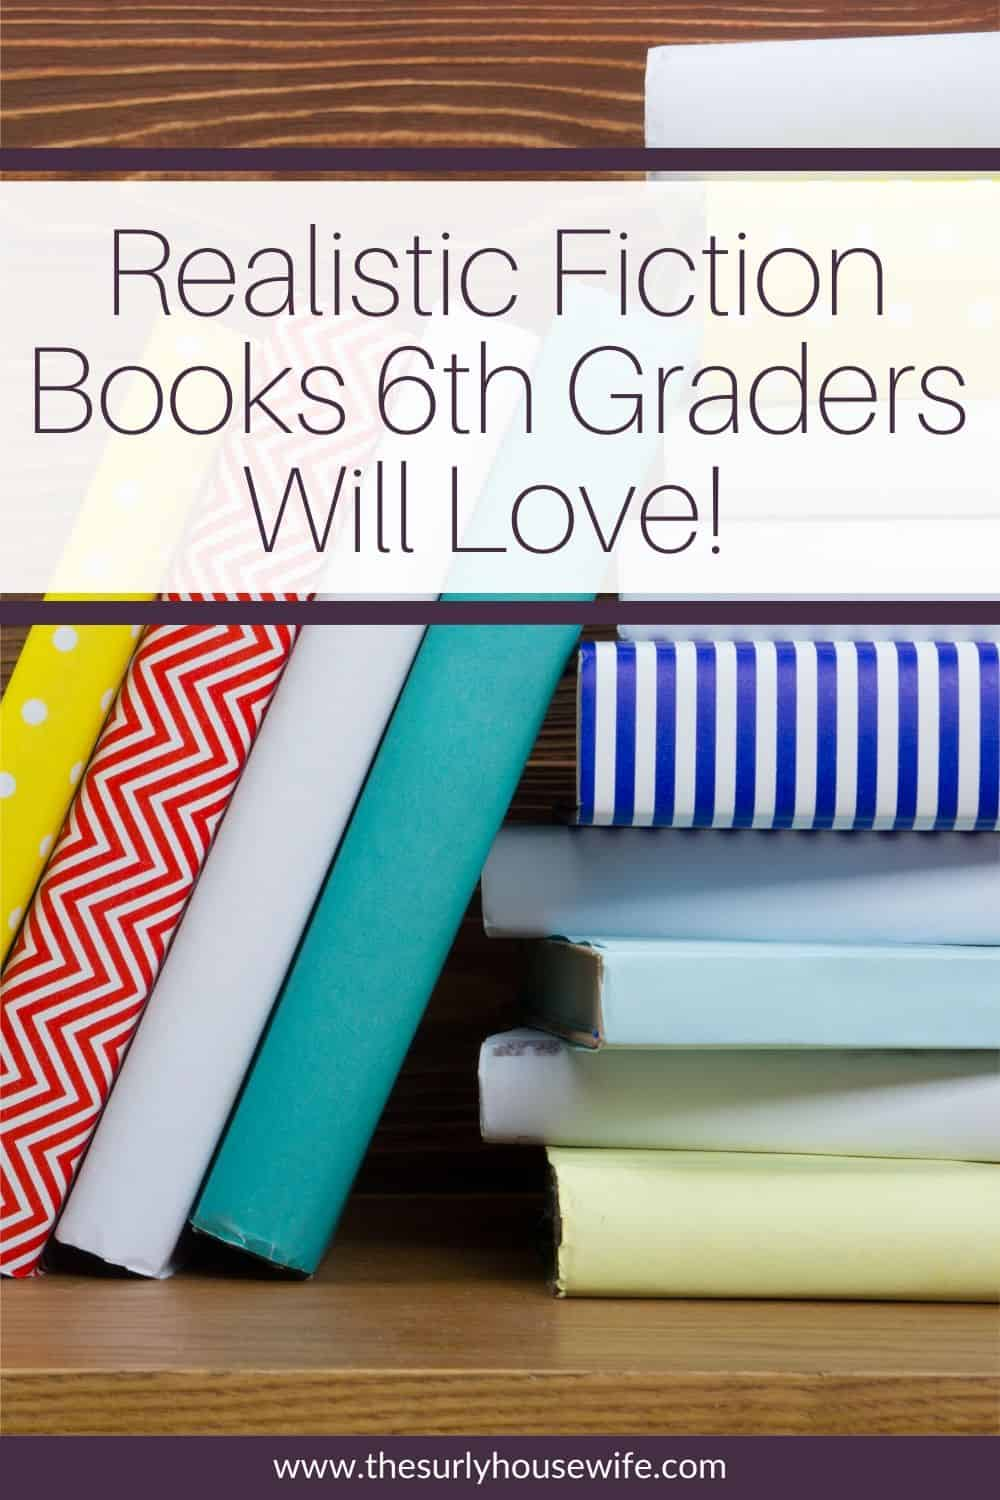 Check out this list of realistic fiction books for 6th graders! Realistic fiction are books that seem like they could be real but they aren't! They are some of the best books for 6th graders. Perfect for a summer reading list, independent reading, or reading aloud!